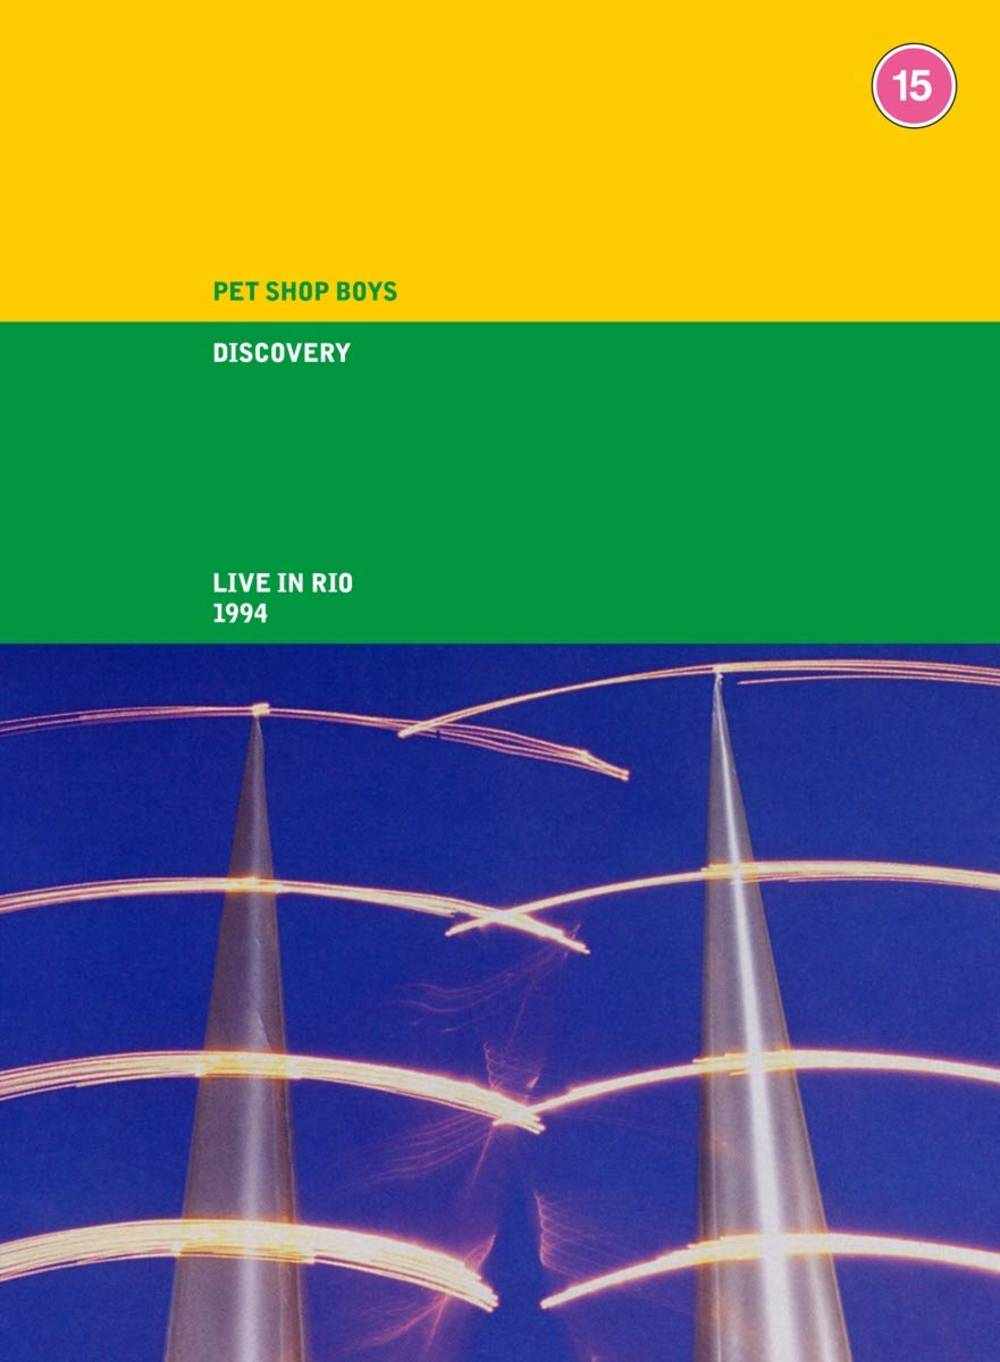 Pet Shop Boys - Discovery (Live In Rio) [DVD/2CD]